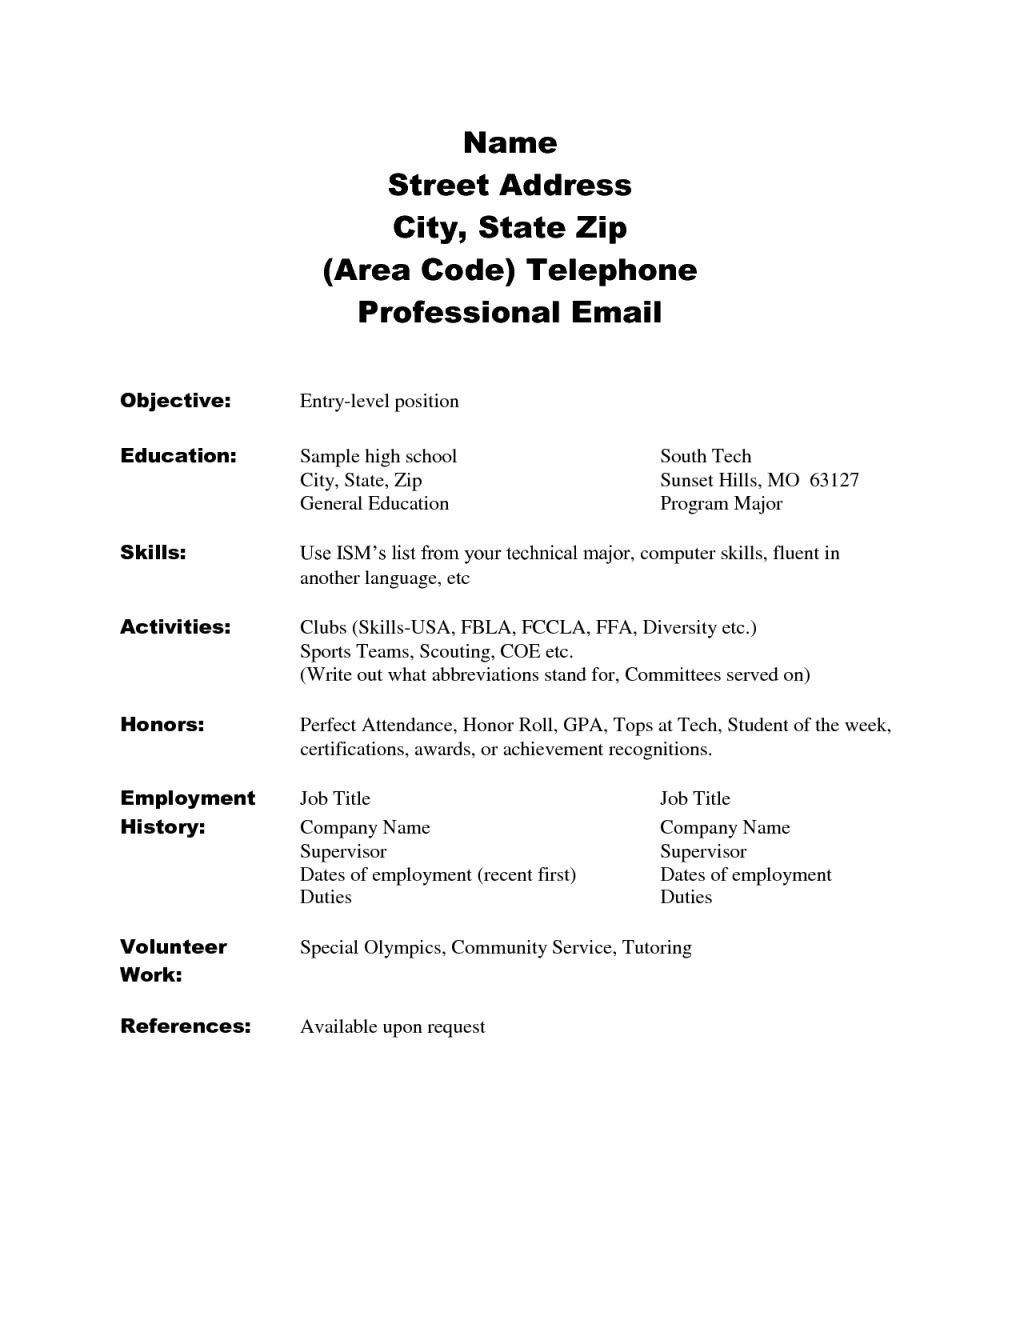 Image Result For Skill Based Resume Template Child's